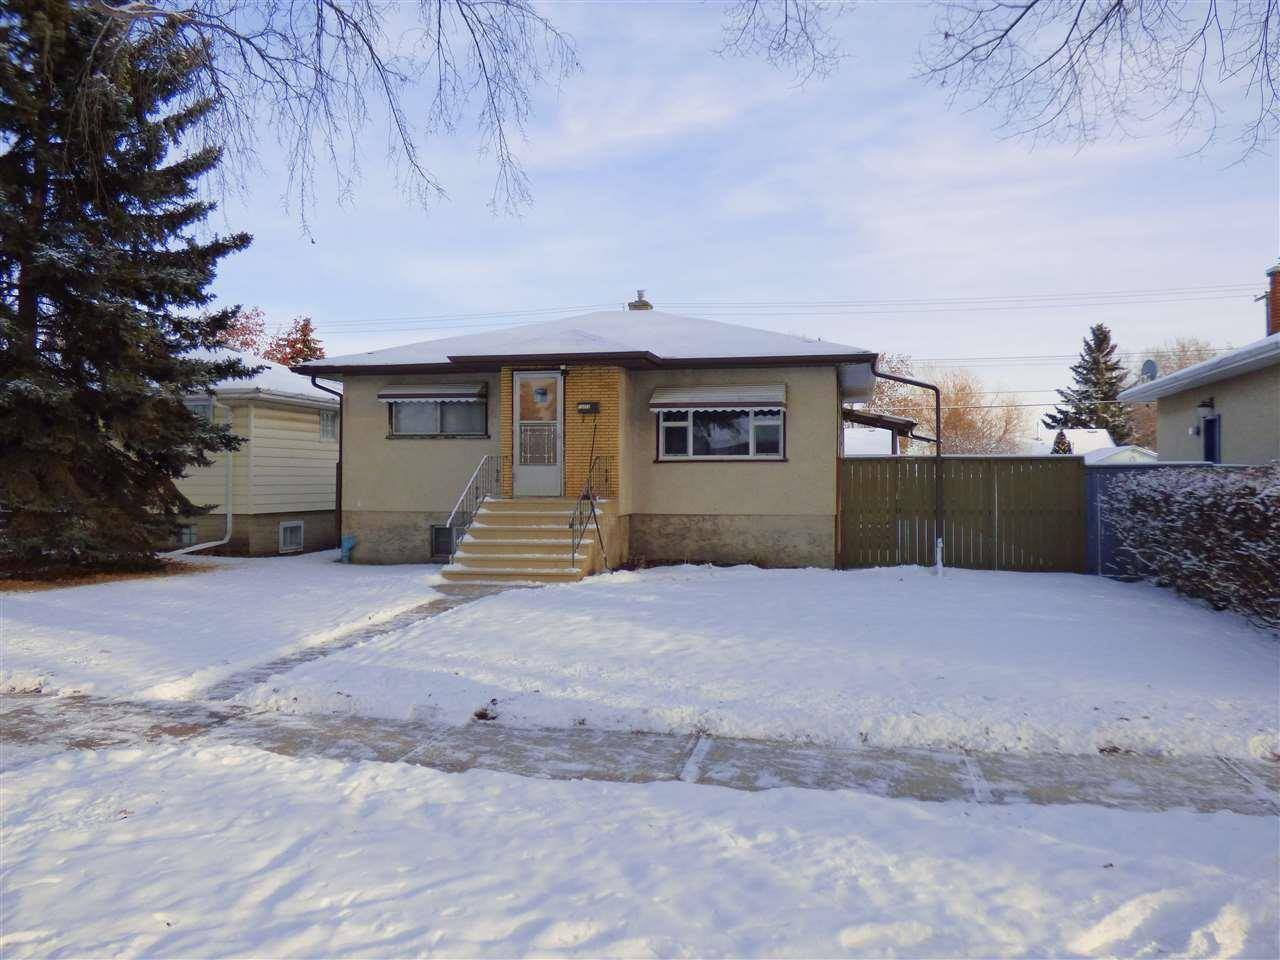 House for sale at 13033 64 St Nw Edmonton Alberta - MLS: E4181681